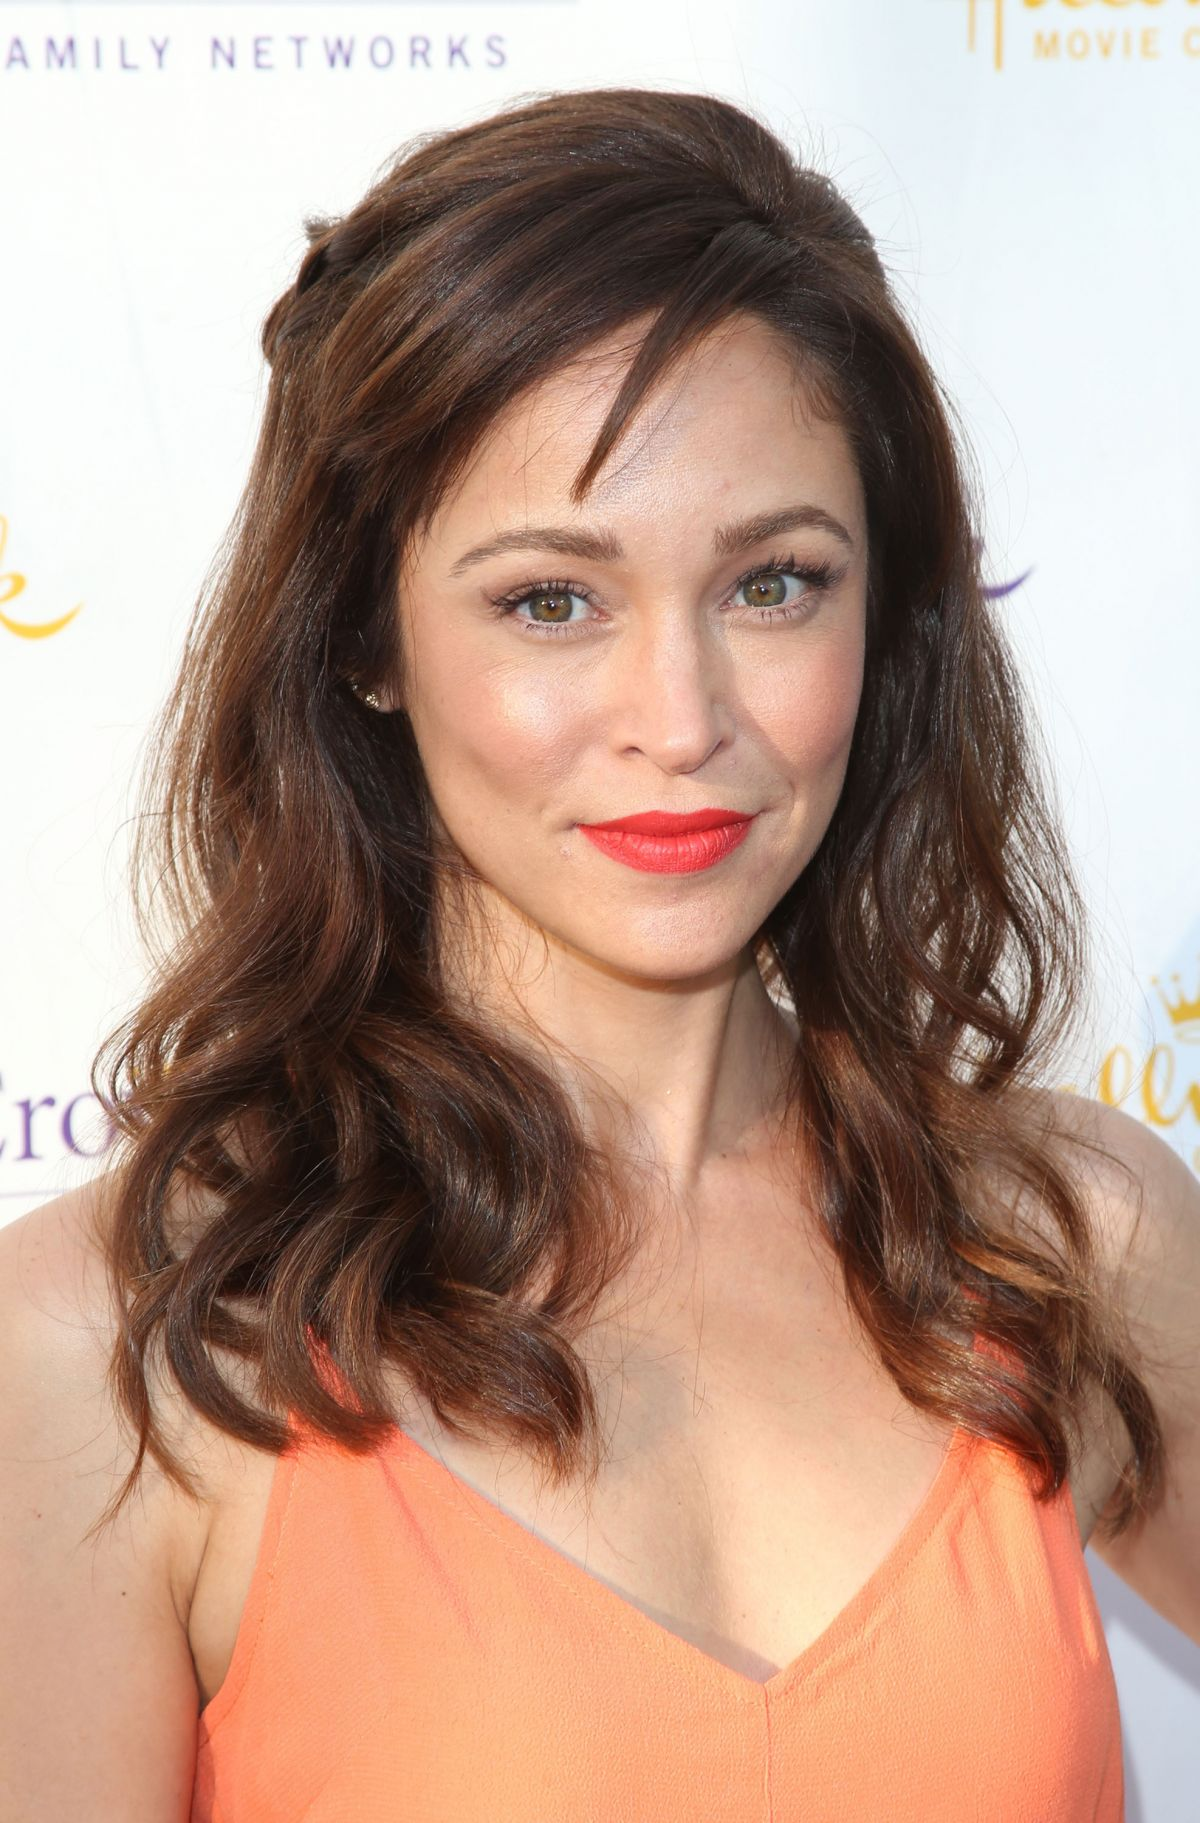 autumn reeser instagramautumn reeser red alert 3, autumn reeser 2016, autumn reeser wiki, autumn reeser nationality, autumn reeser, autumn reeser imdb, autumn reeser instagram, autumn reeser 2015, autumn reeser entourage, autumn reeser tumblr, autumn reeser the bannen way, autumn reeser hallmark movies